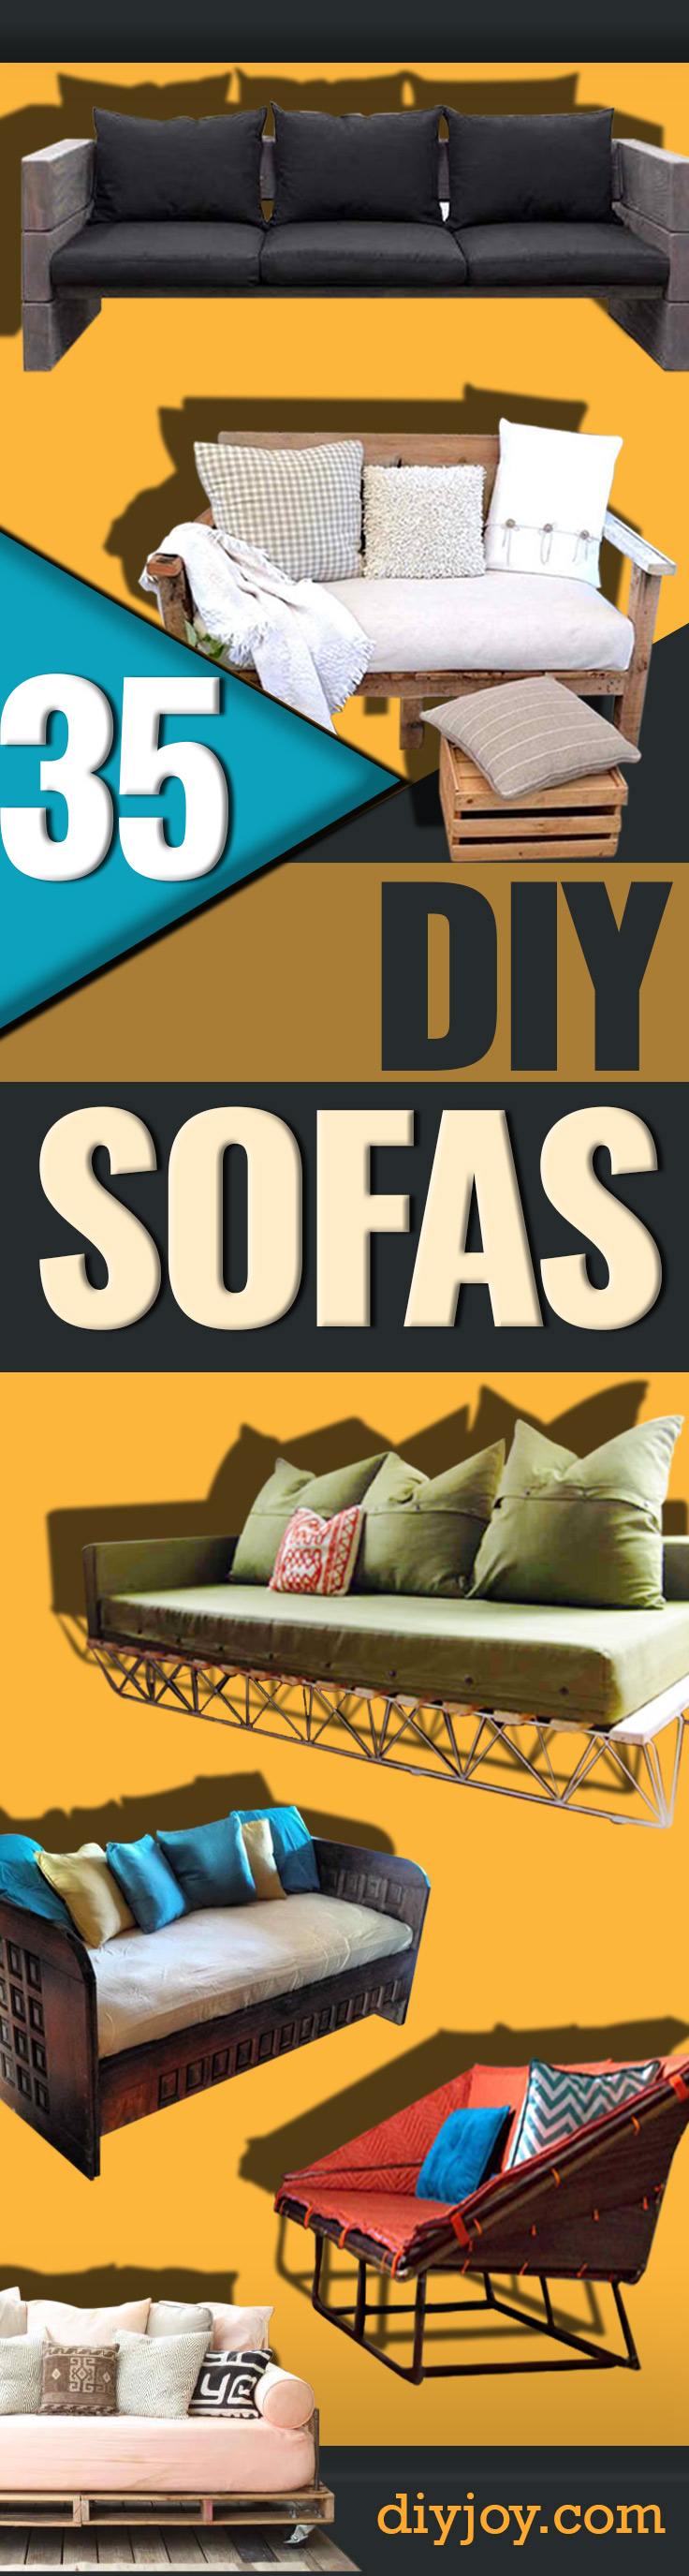 35 Super Cool DIY Sofas and Couches DIY Joy